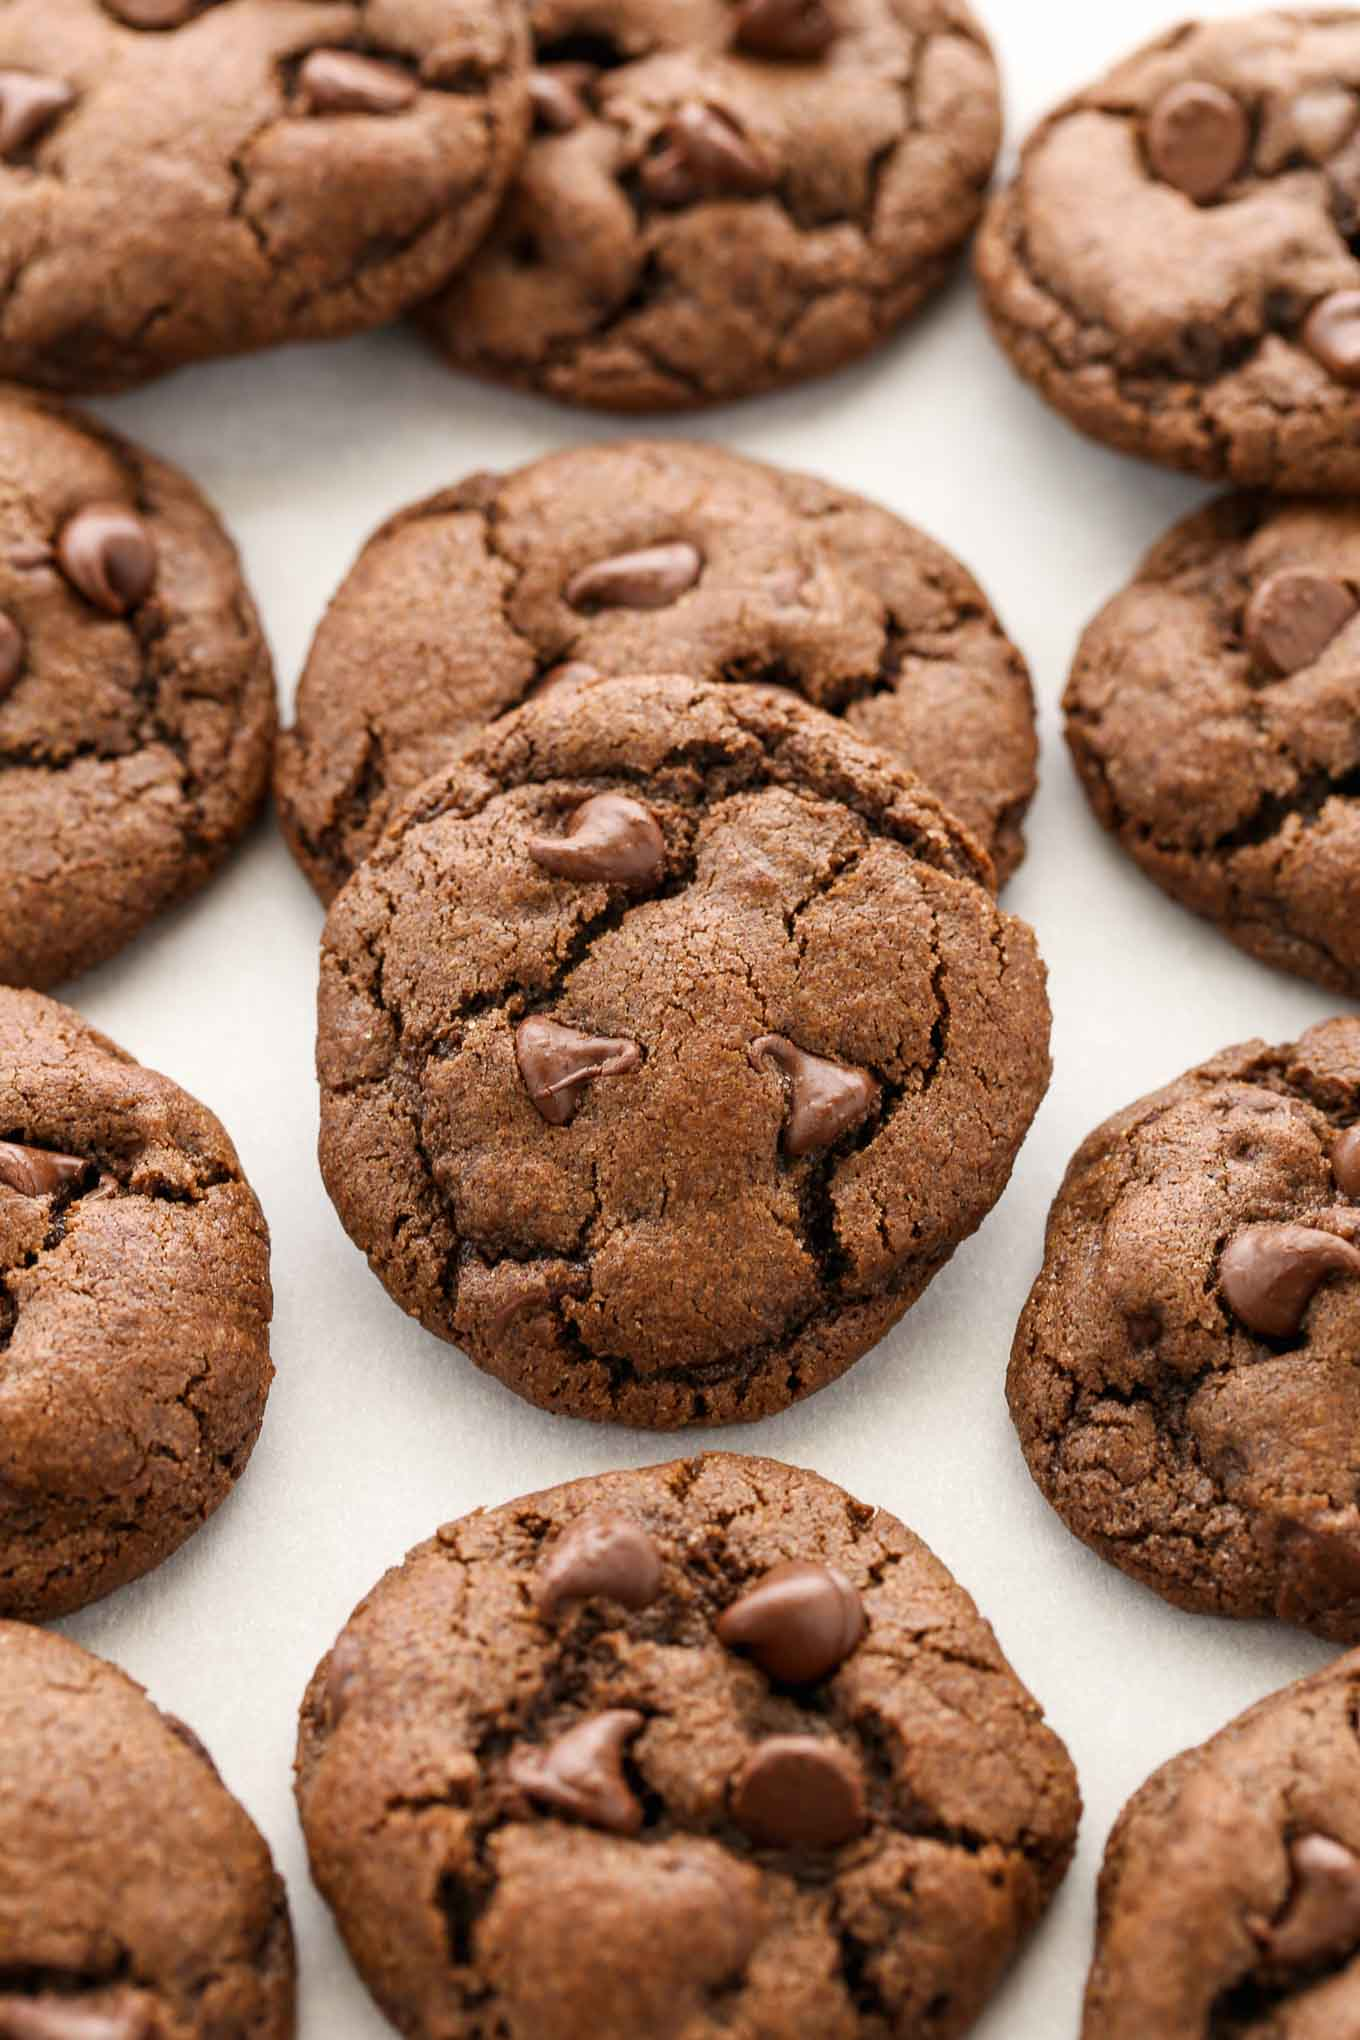 Double chocolate cookies lined up on a piece of parchment paper.